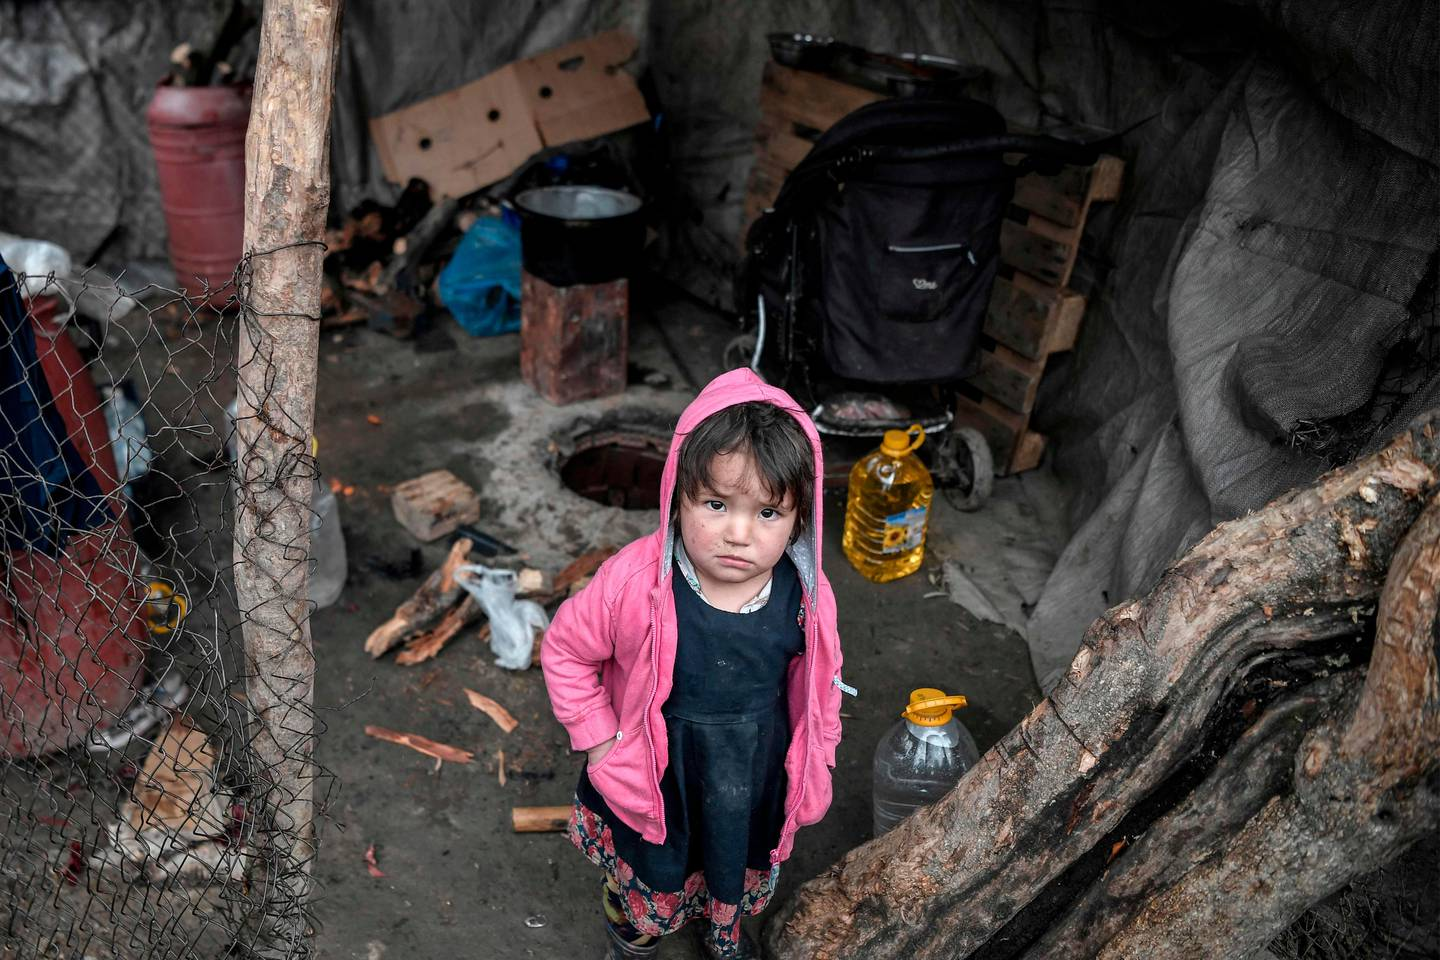 A child looks on from its family shelter at the overcrowded Moria migrant camp on the island of Lesbos, on March 5, 2020. - Greece's defence ministry on March 5 announced a week-long shipping ban around Aegean islands facing a migration surge from Turkey, excepting only EU and NATO patrol vessels and registered commercial ships. Greece is attempting to hold back a migration surge by land and sea from neighbouring Turkey that began last week after Ankara said it would no longer stop asylum seekers from entering Europe. (Photo by LOUISA GOULIAMAKI / AFP)